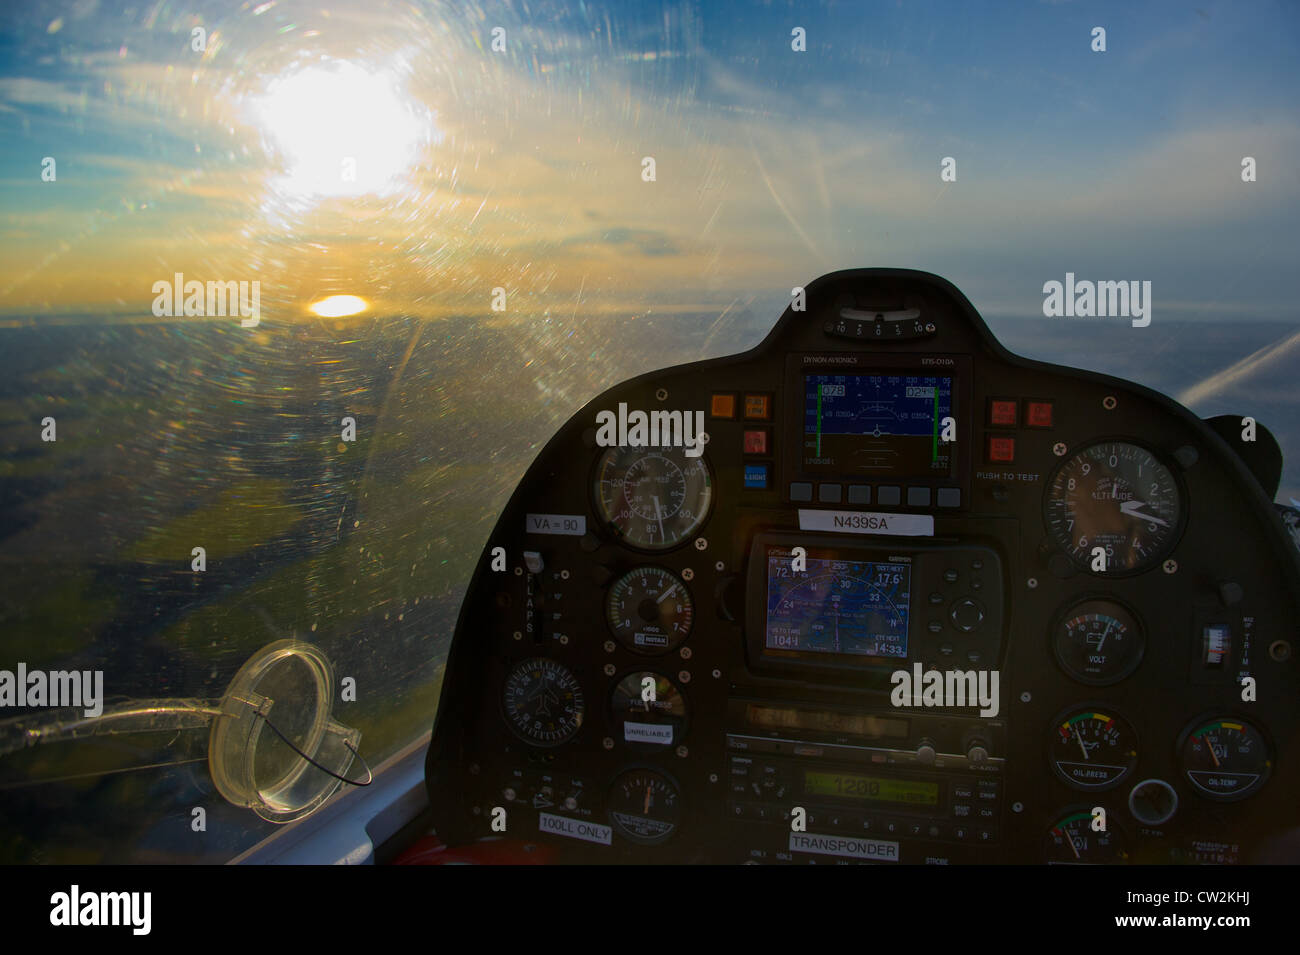 Cockpit of a small plane - Stock Image